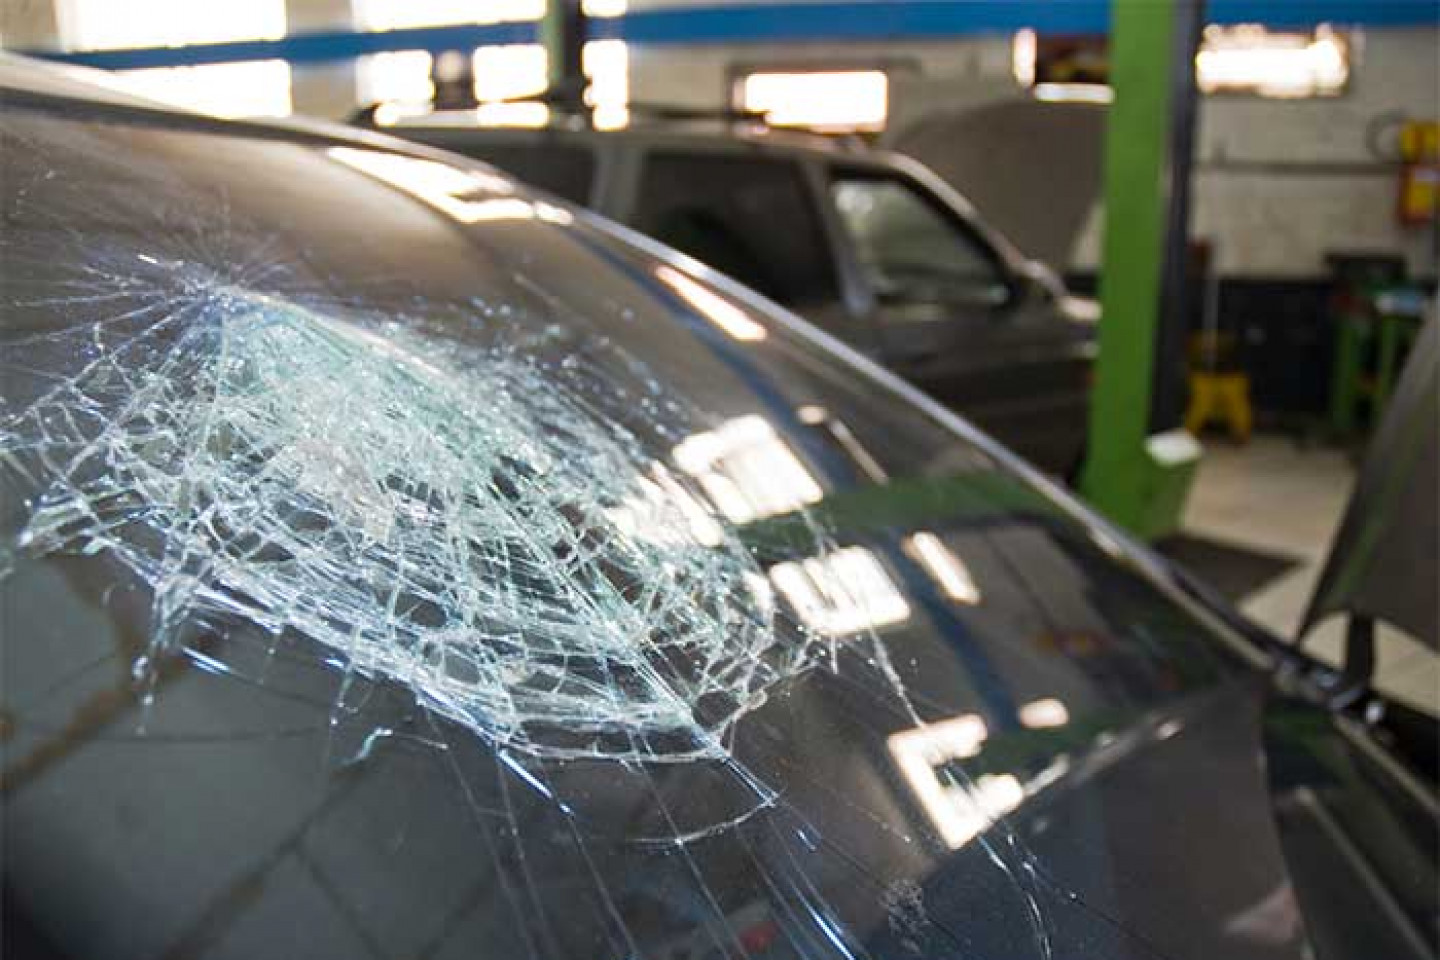 windshield replacement in mt airy and pilot mountain nc